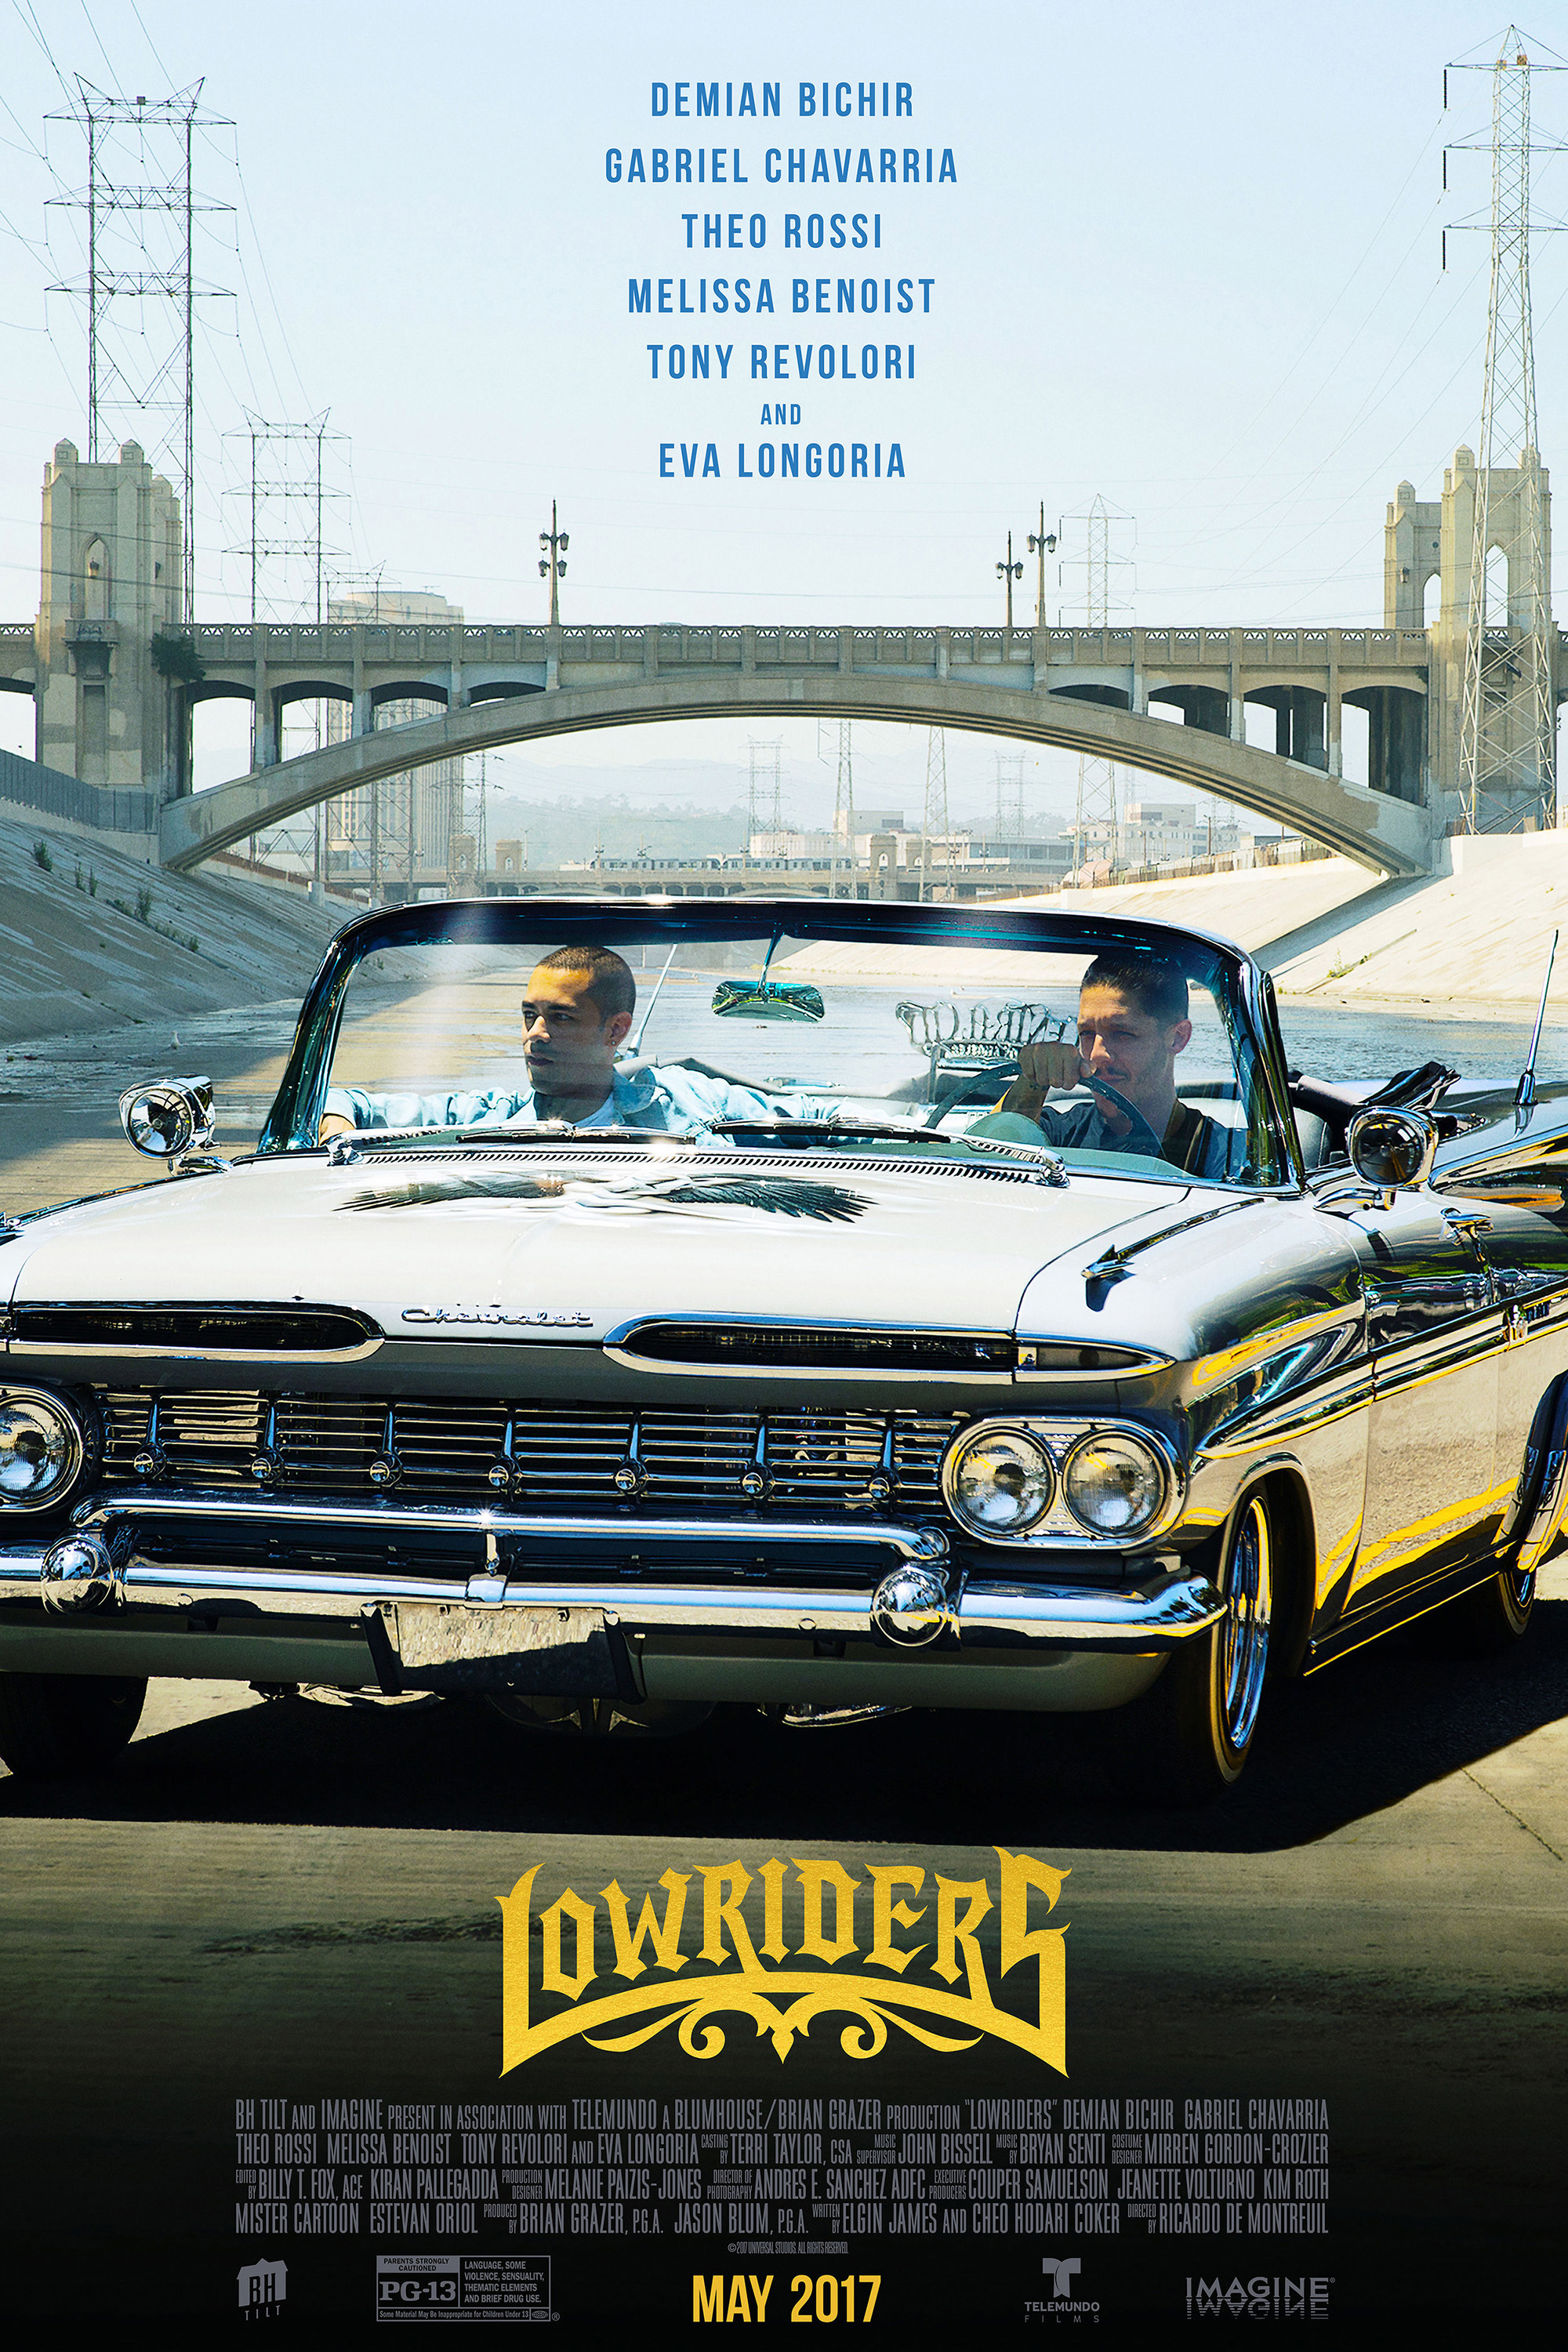 Poster for Lowriders